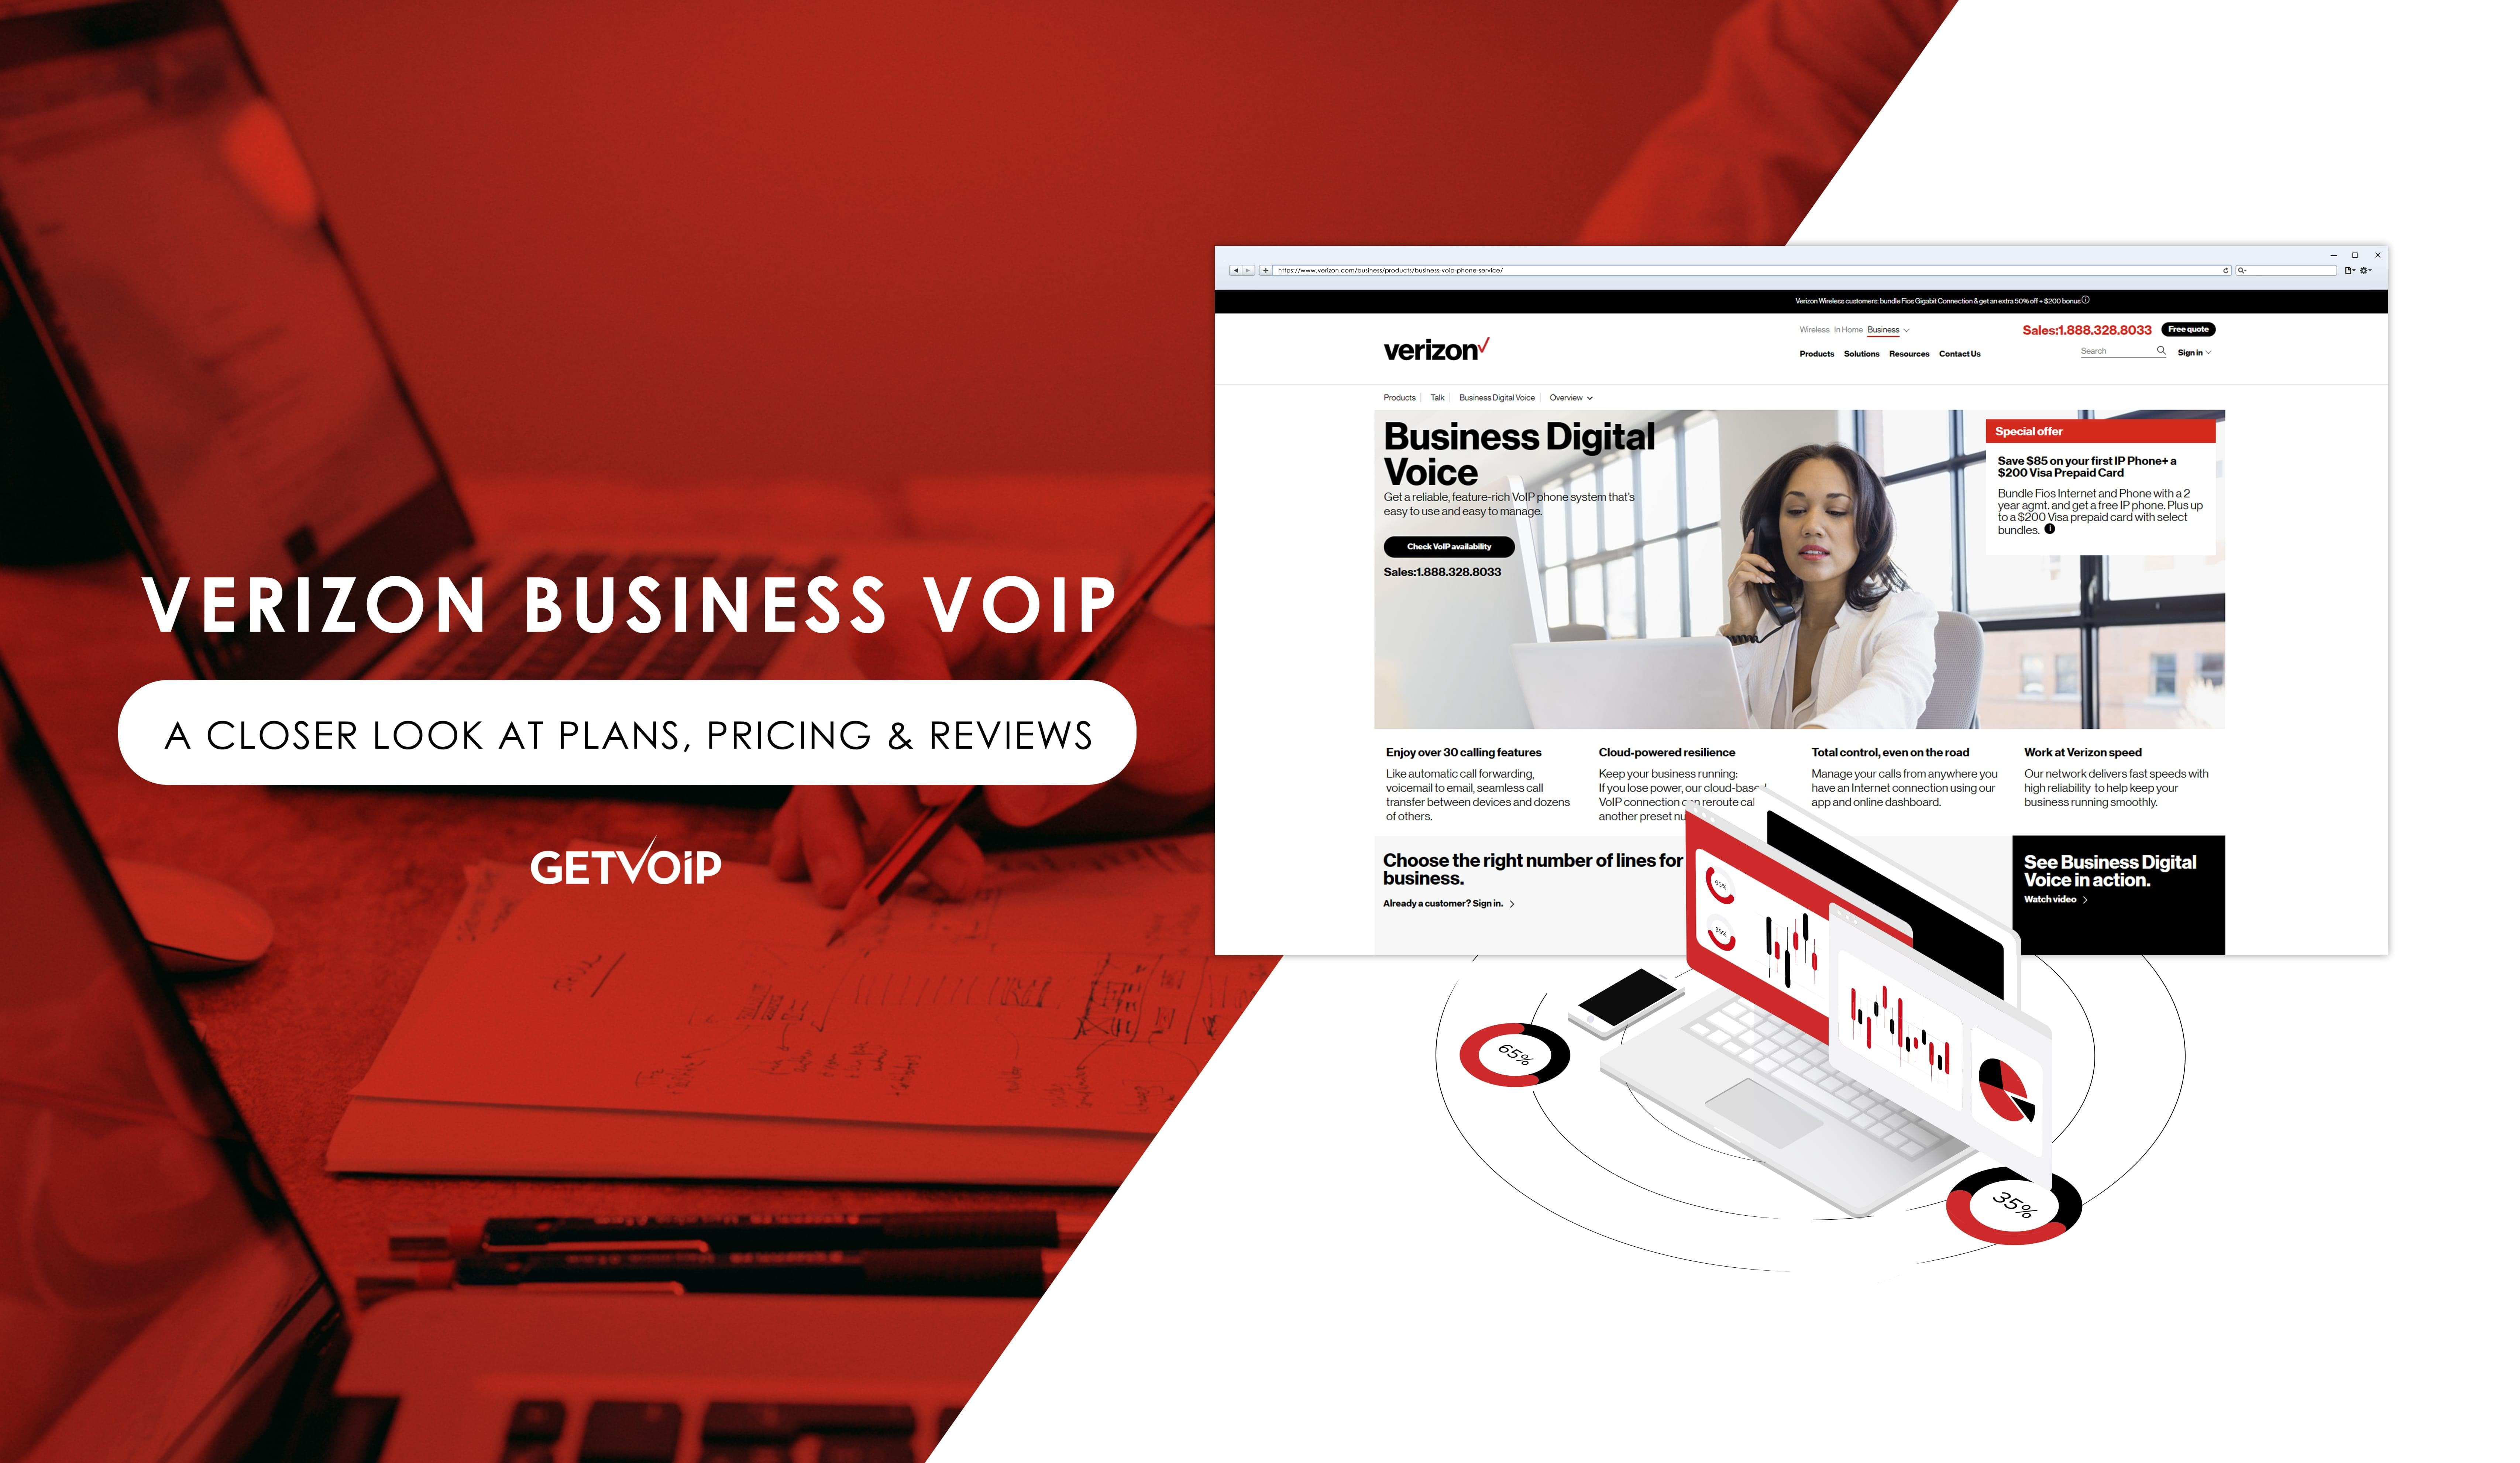 Verizon Business VoIP: A Closer Look at Plans, Pricing & Reviews